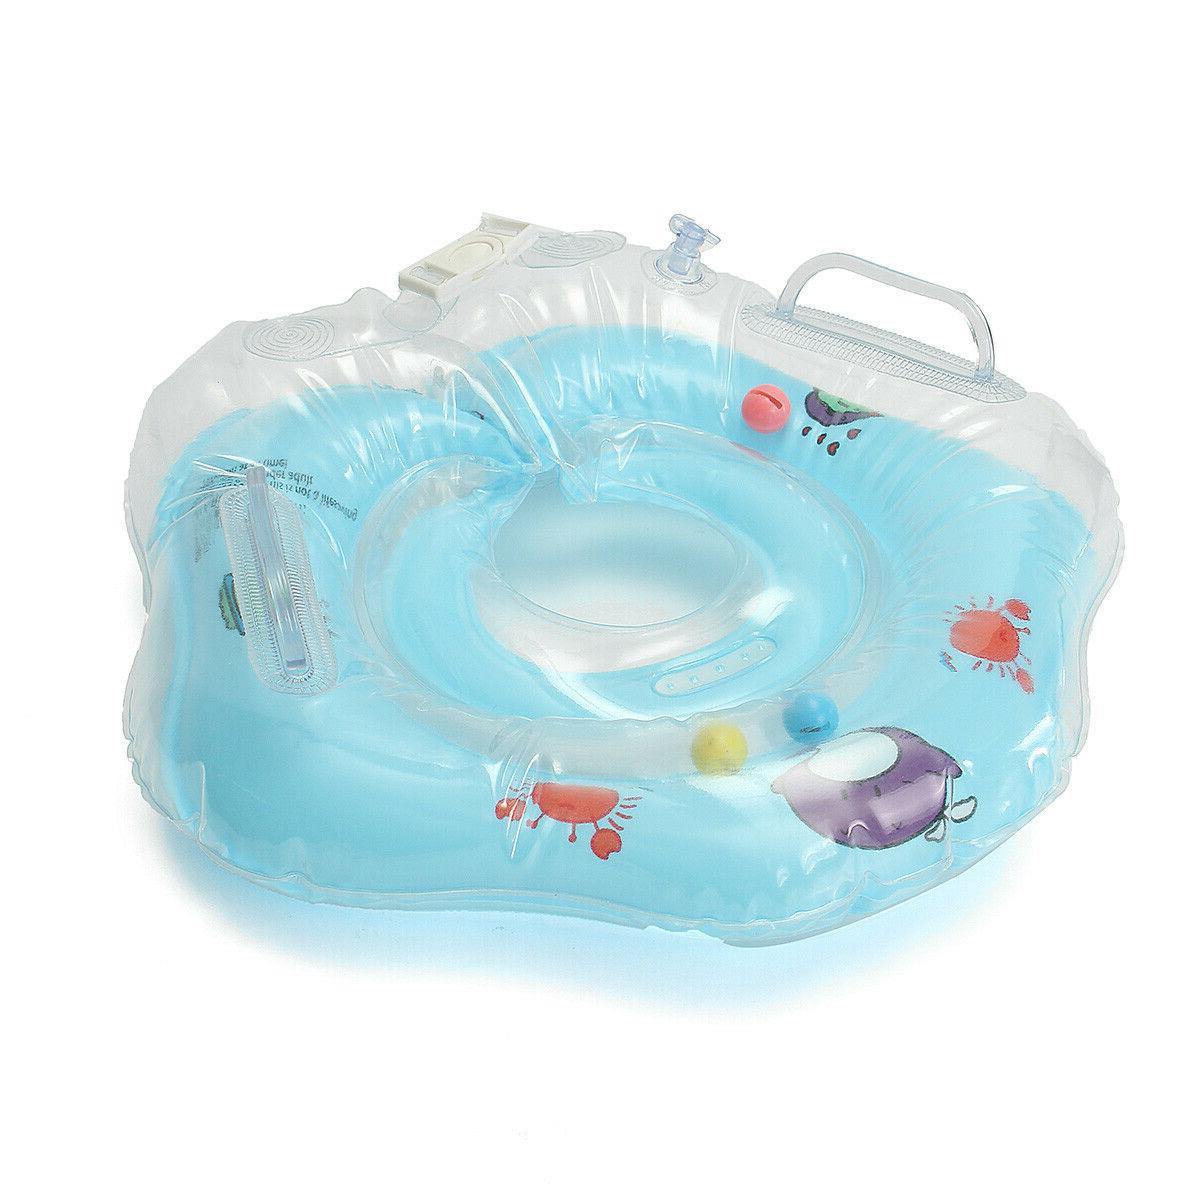 IPRee™ Swimming Pool Neck Inflatable Ring Built-in